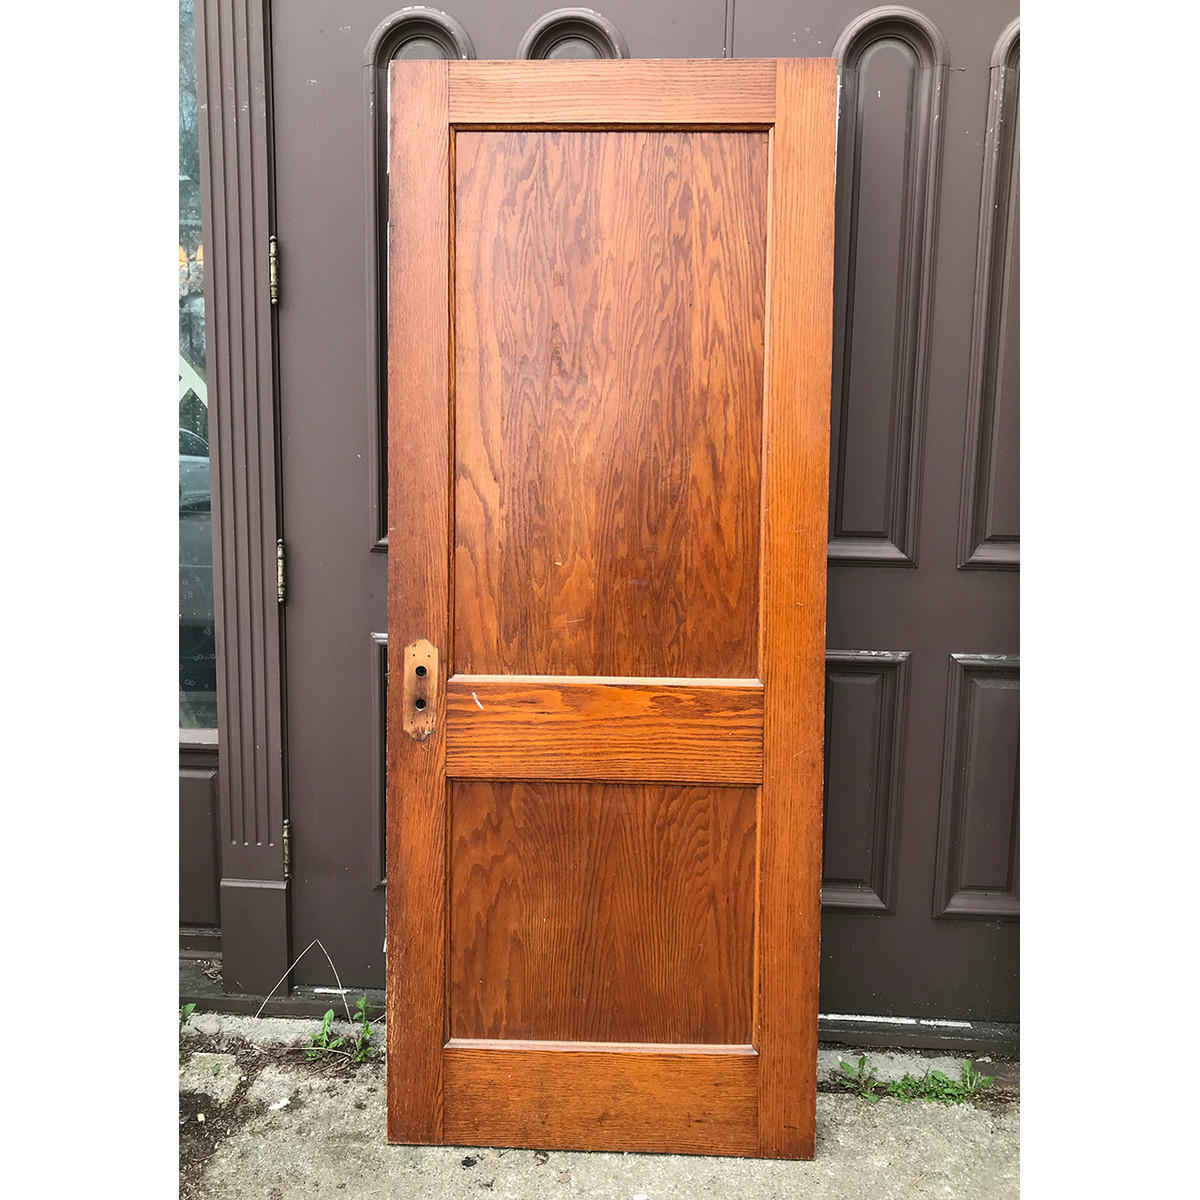 "D18069 - Antique Oak Traditional Two Flat Panel Interior Door 26"" x 77-3/4"""